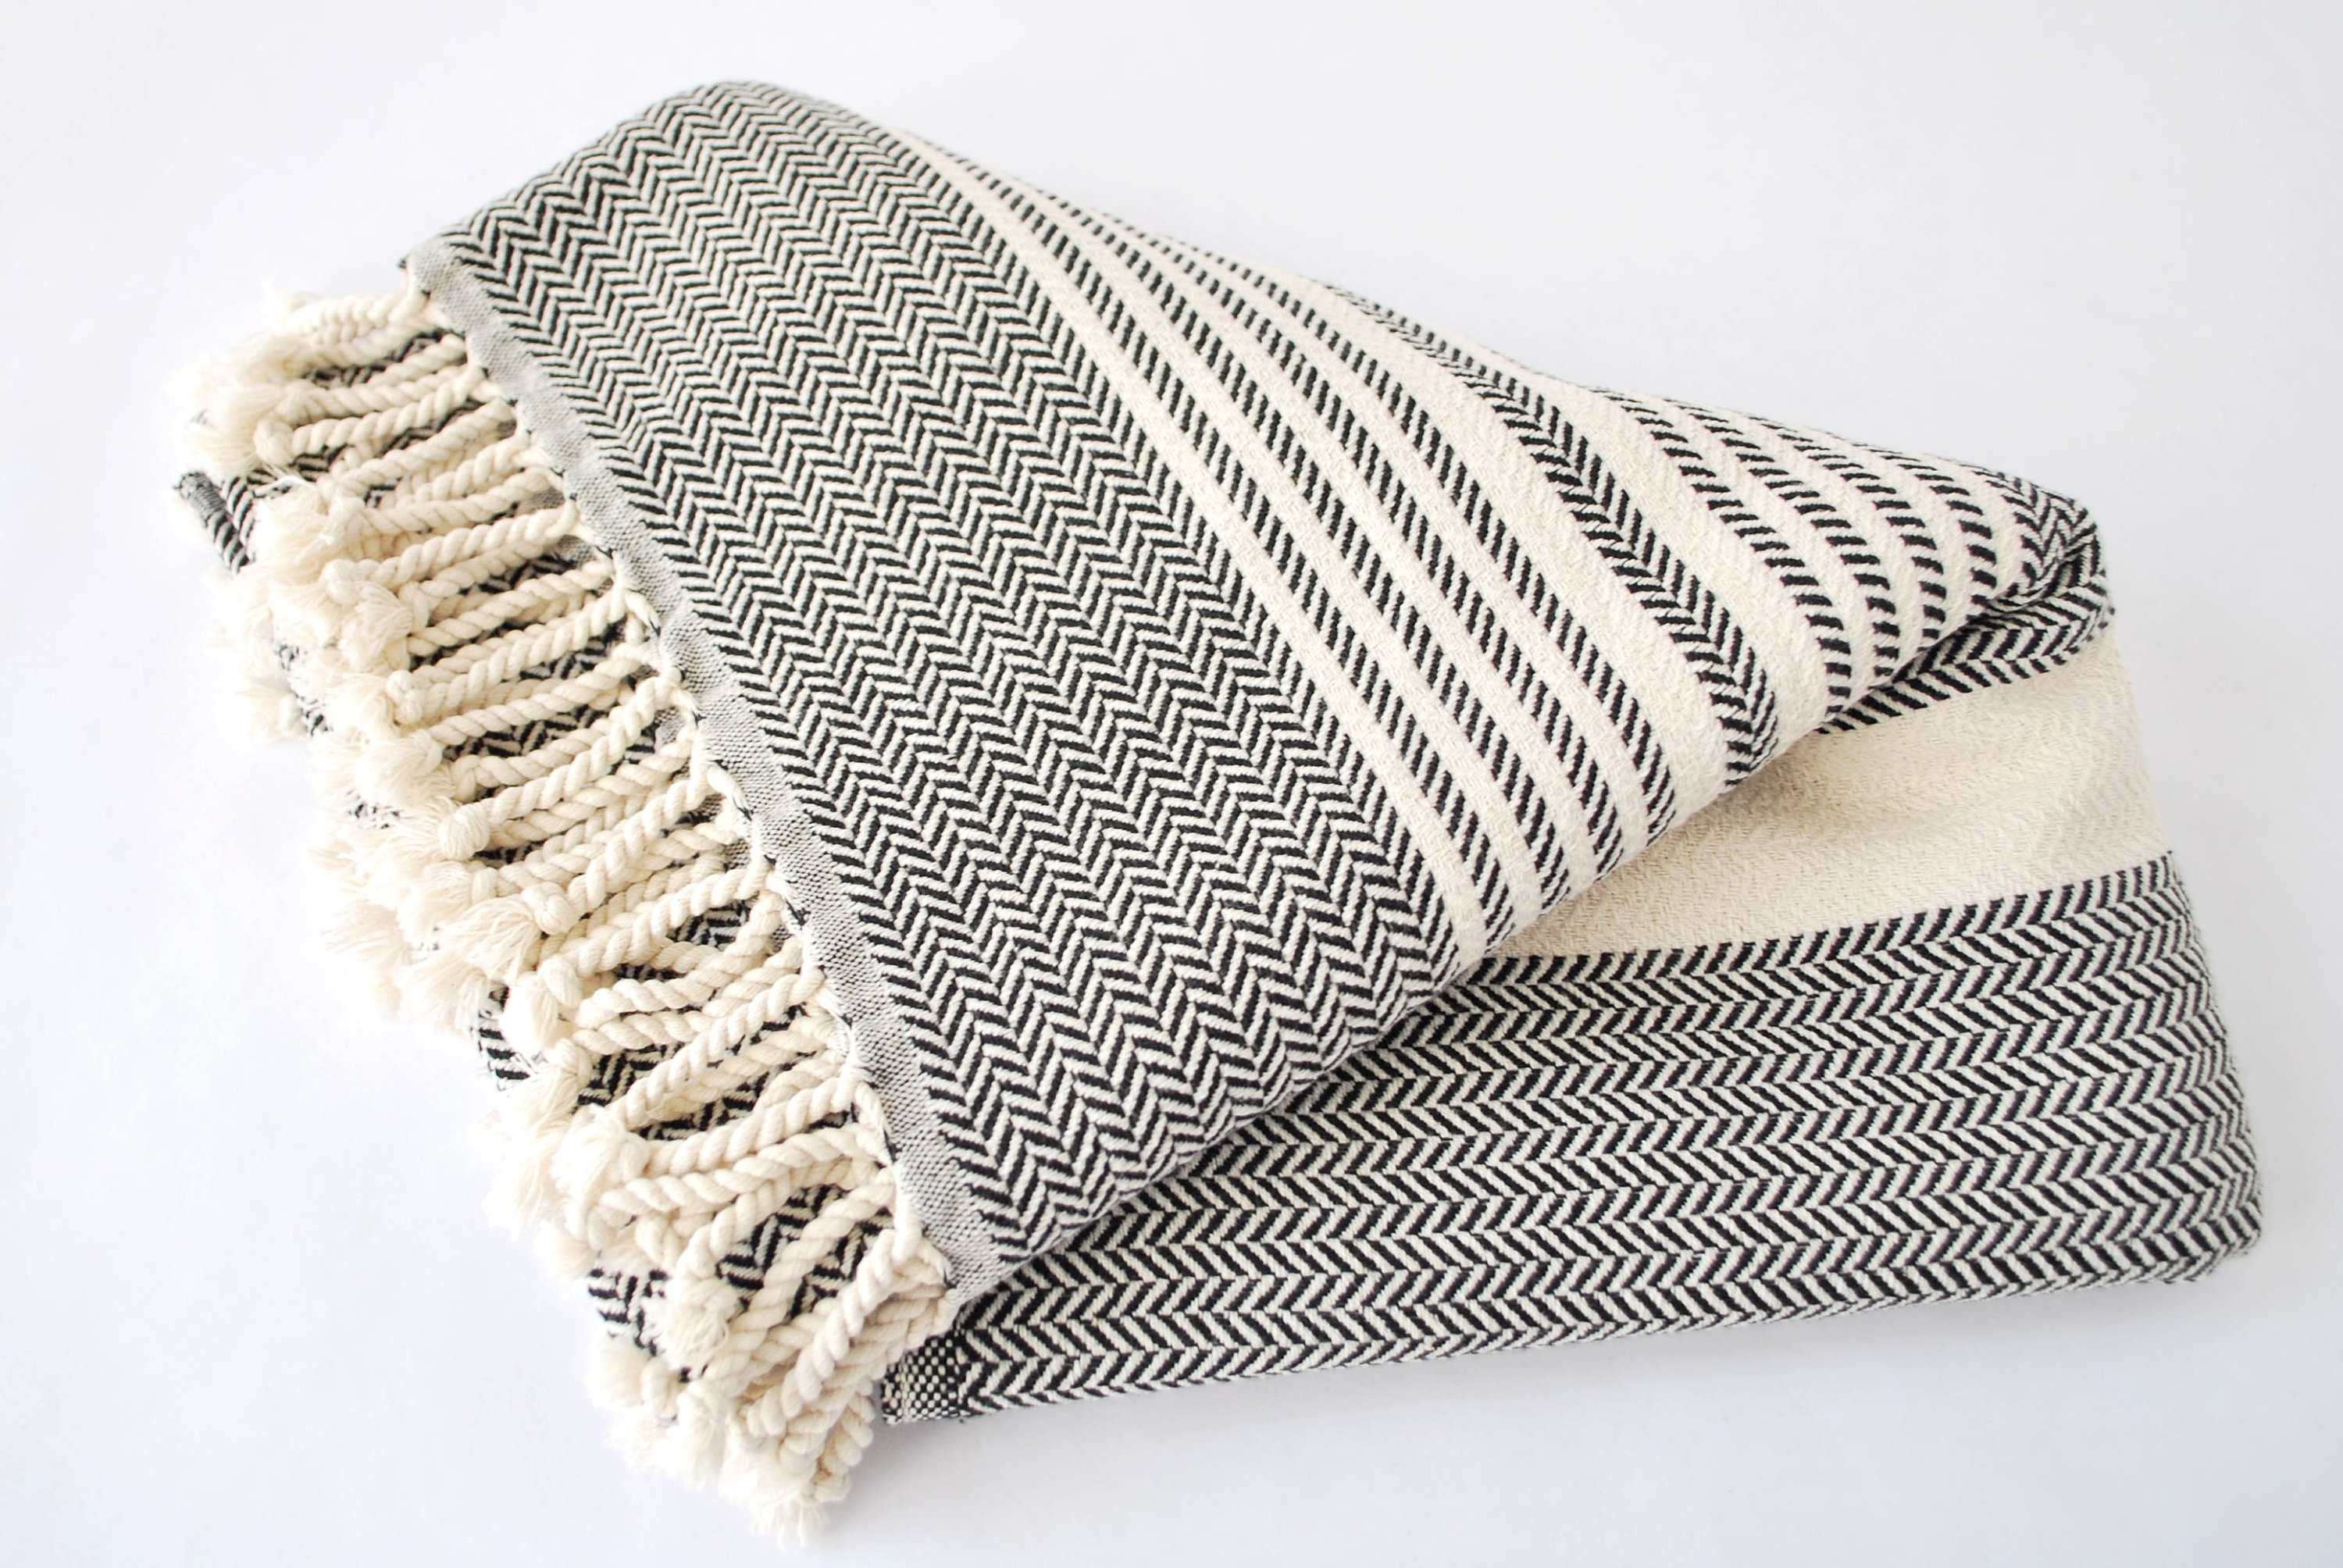 Beautiful neutral beach/picnic blanket